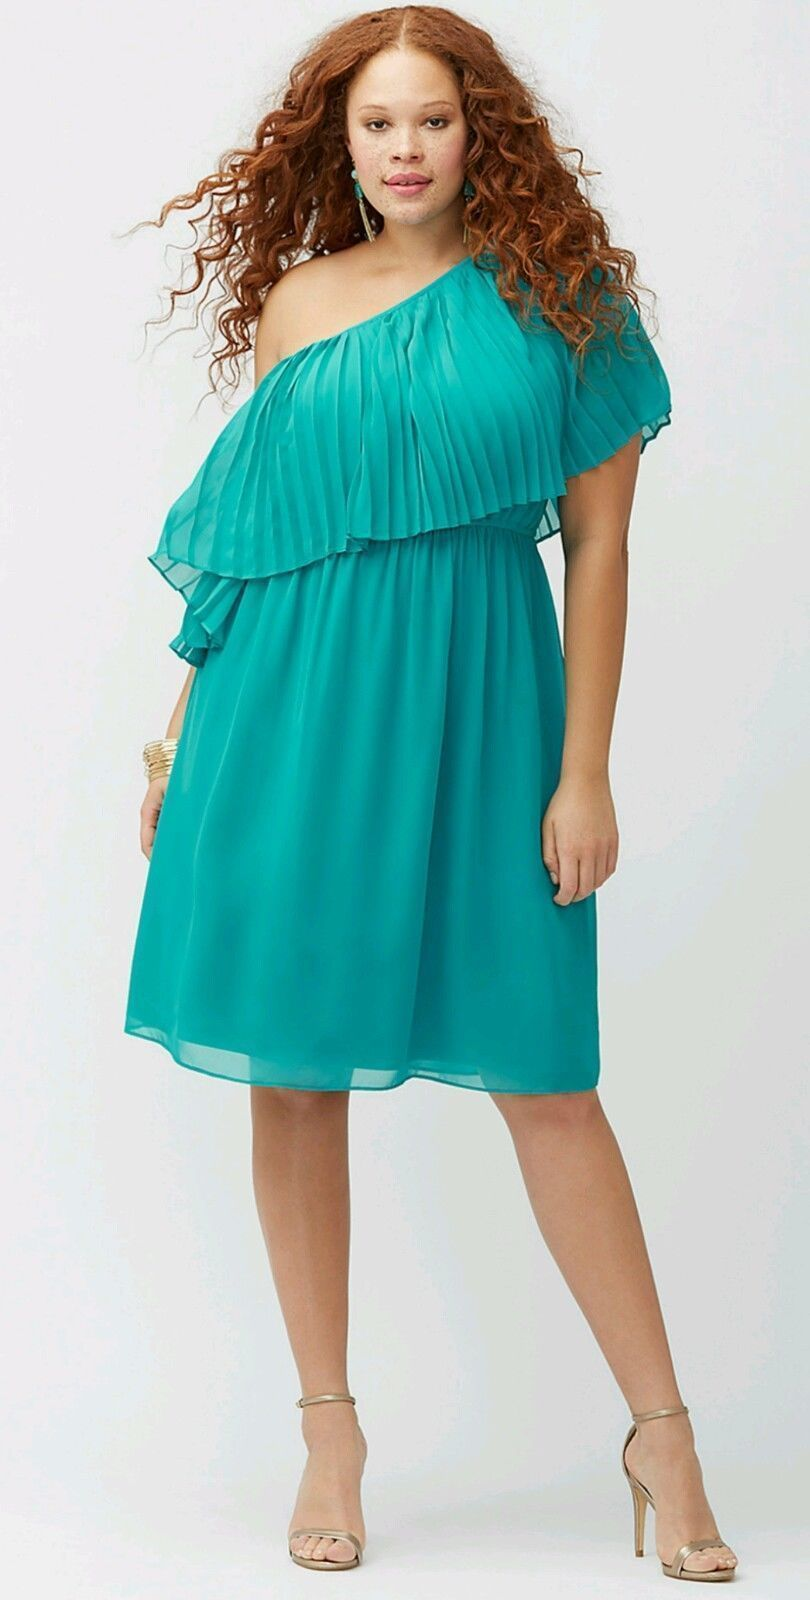 Lane Bryant 14/16 Teal Green Off One Shoulder Pleated Chiffon Dress ...